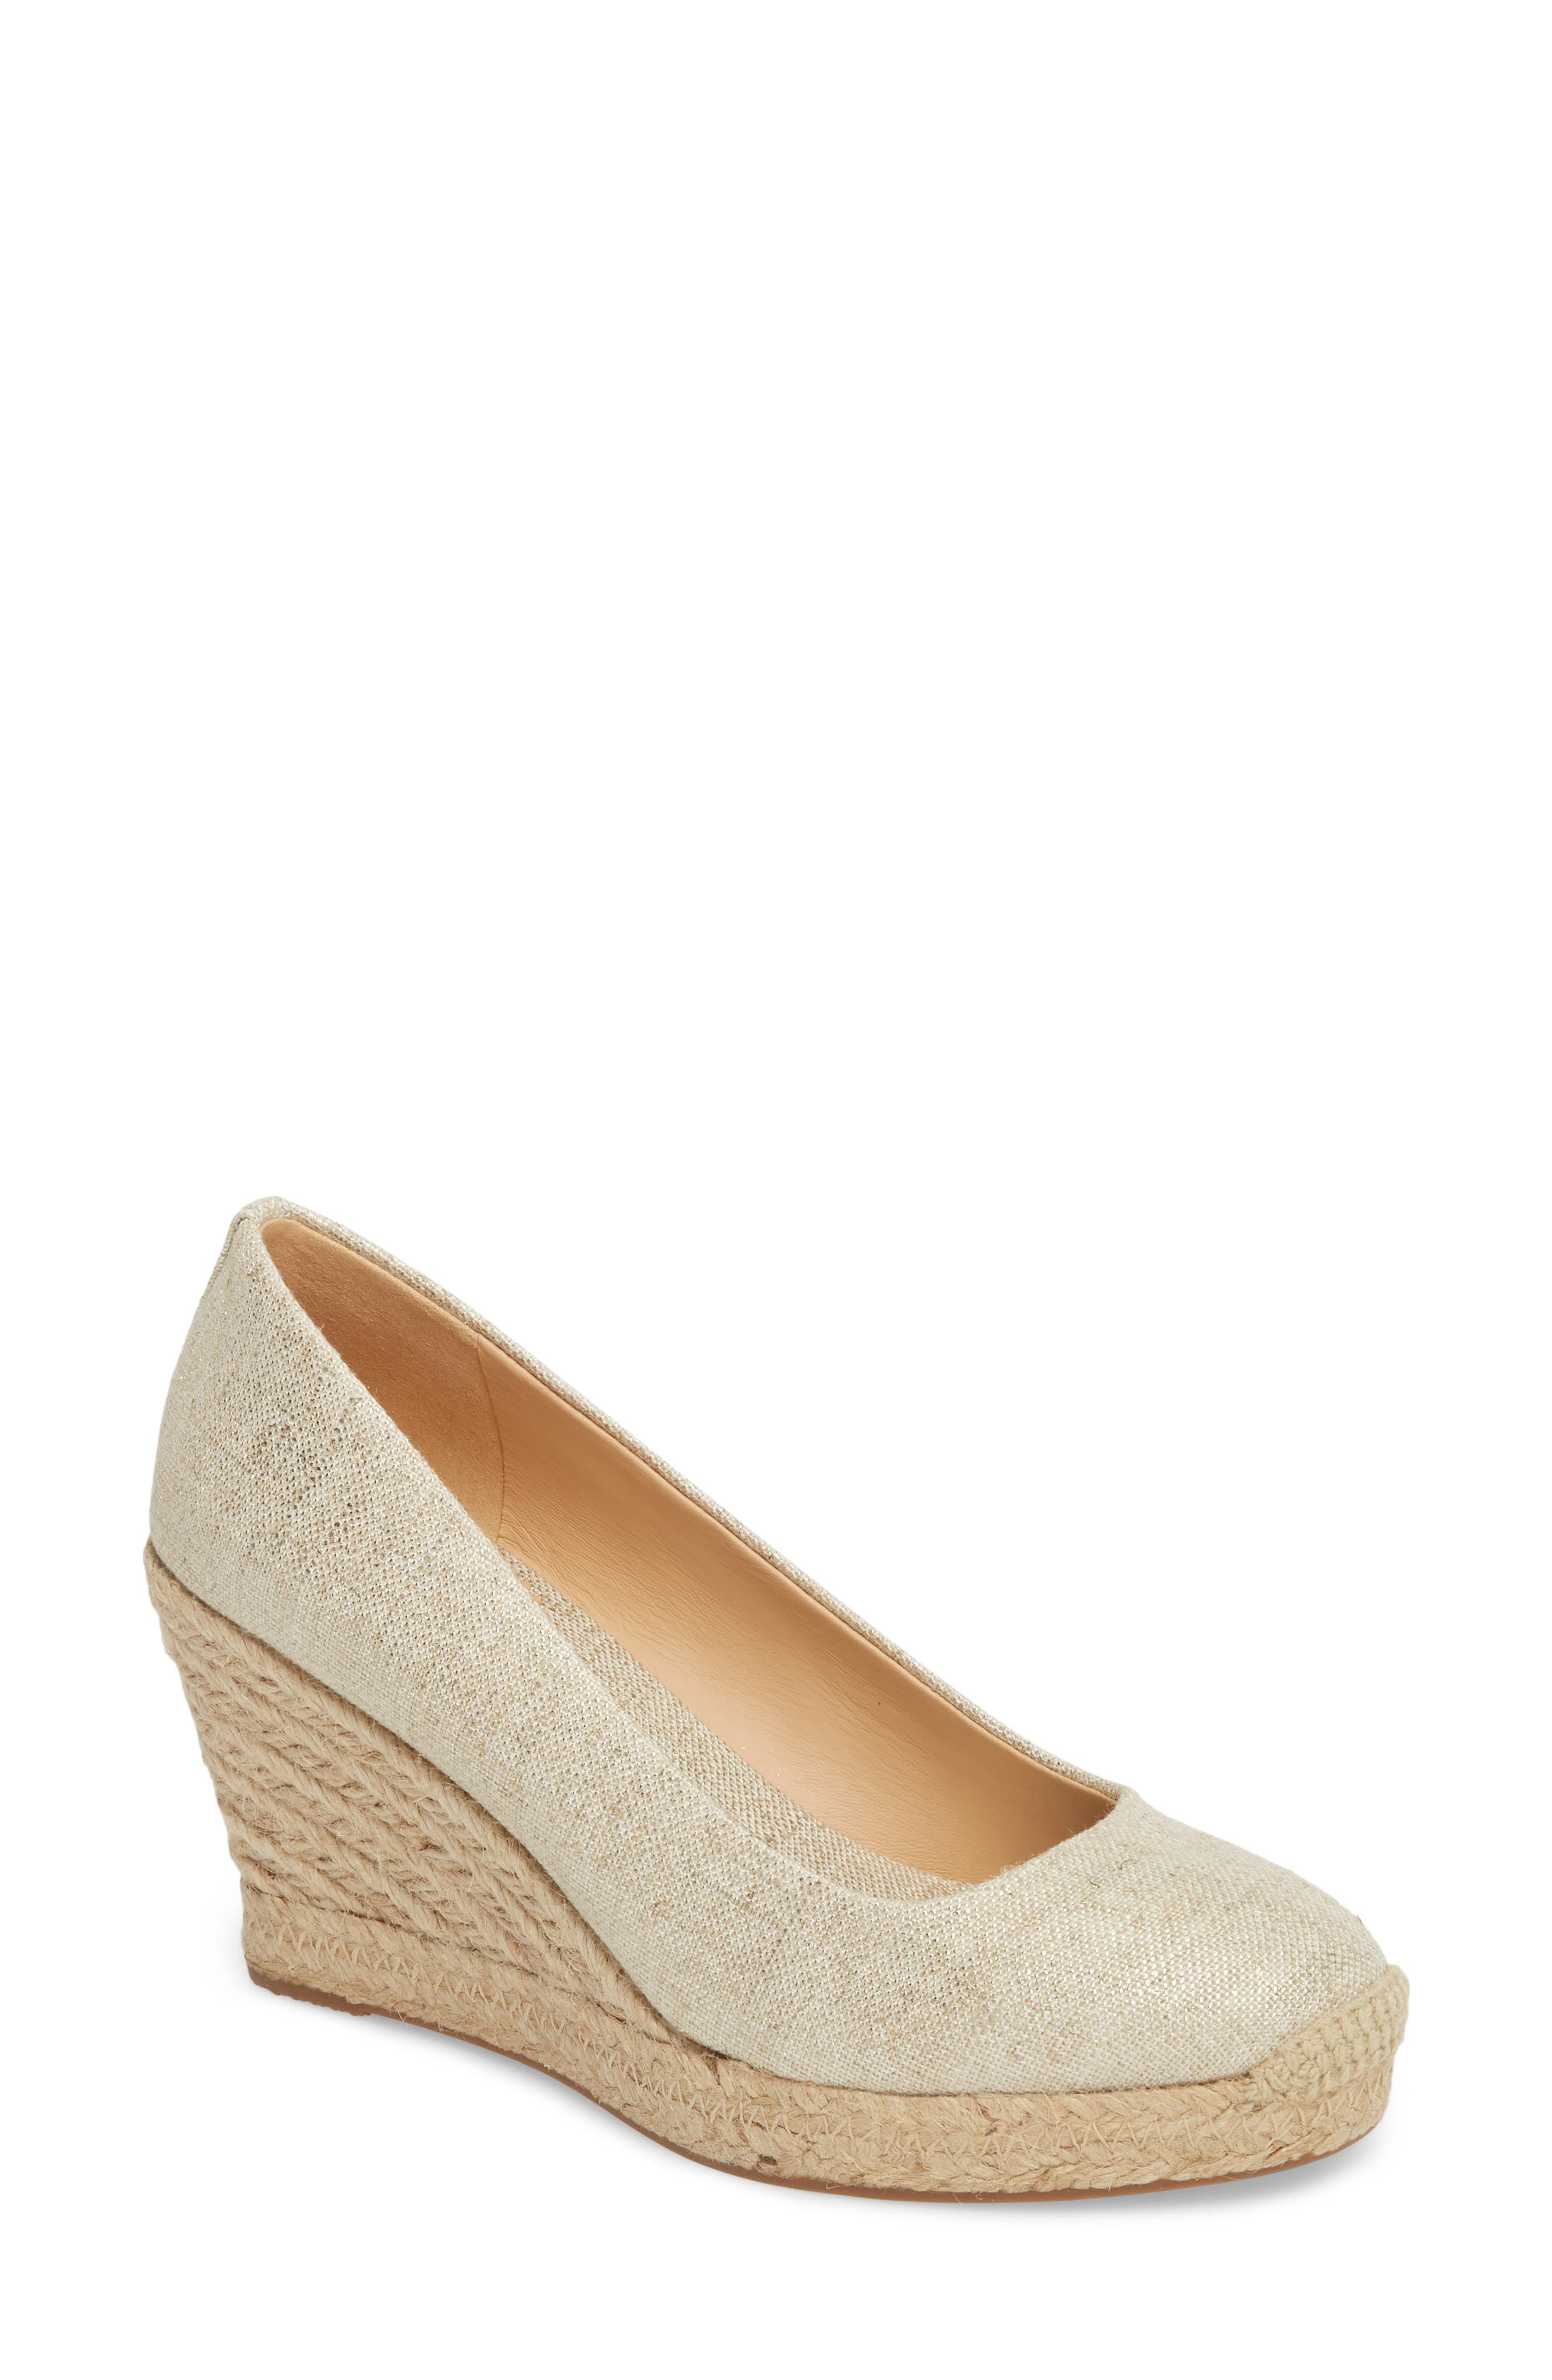 Seville Espadrille Wedge, Main, color, 710